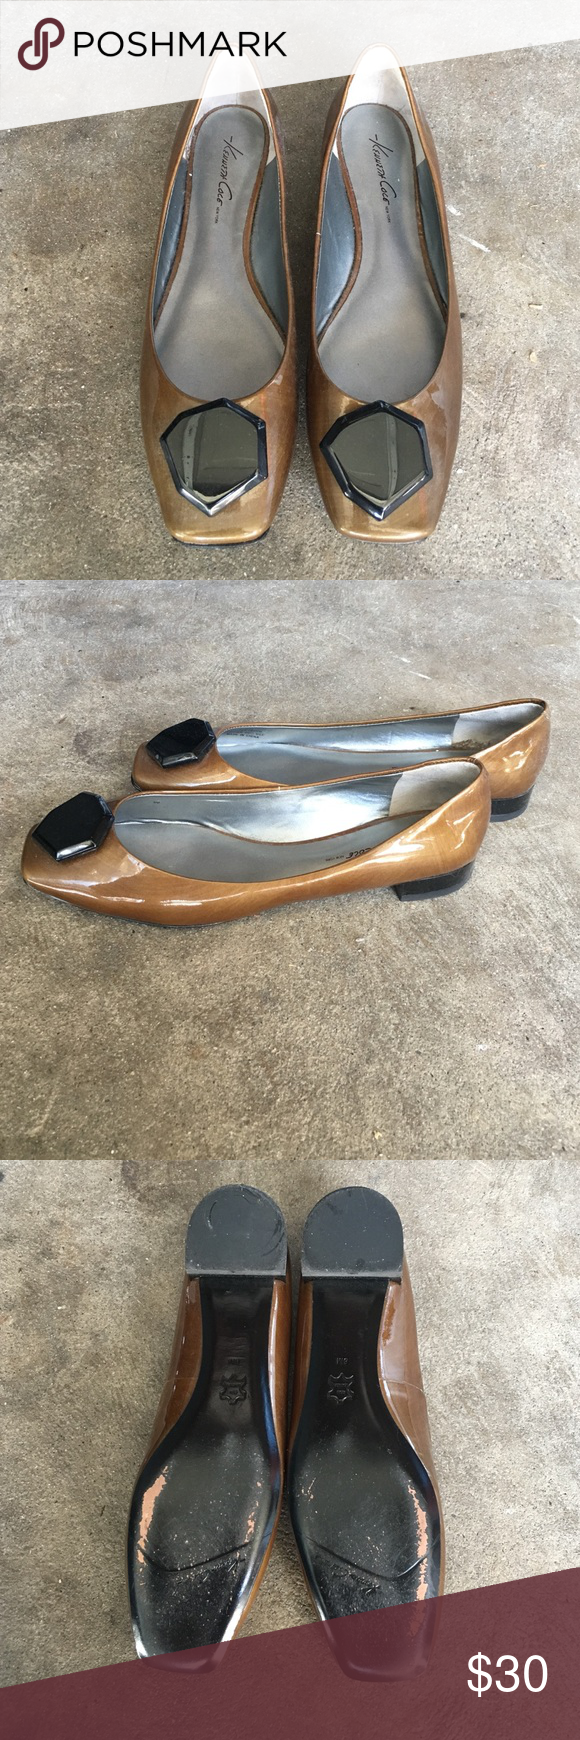 Kenneth Cole flats Worn once in size 8. Kenneth Cole Shoes